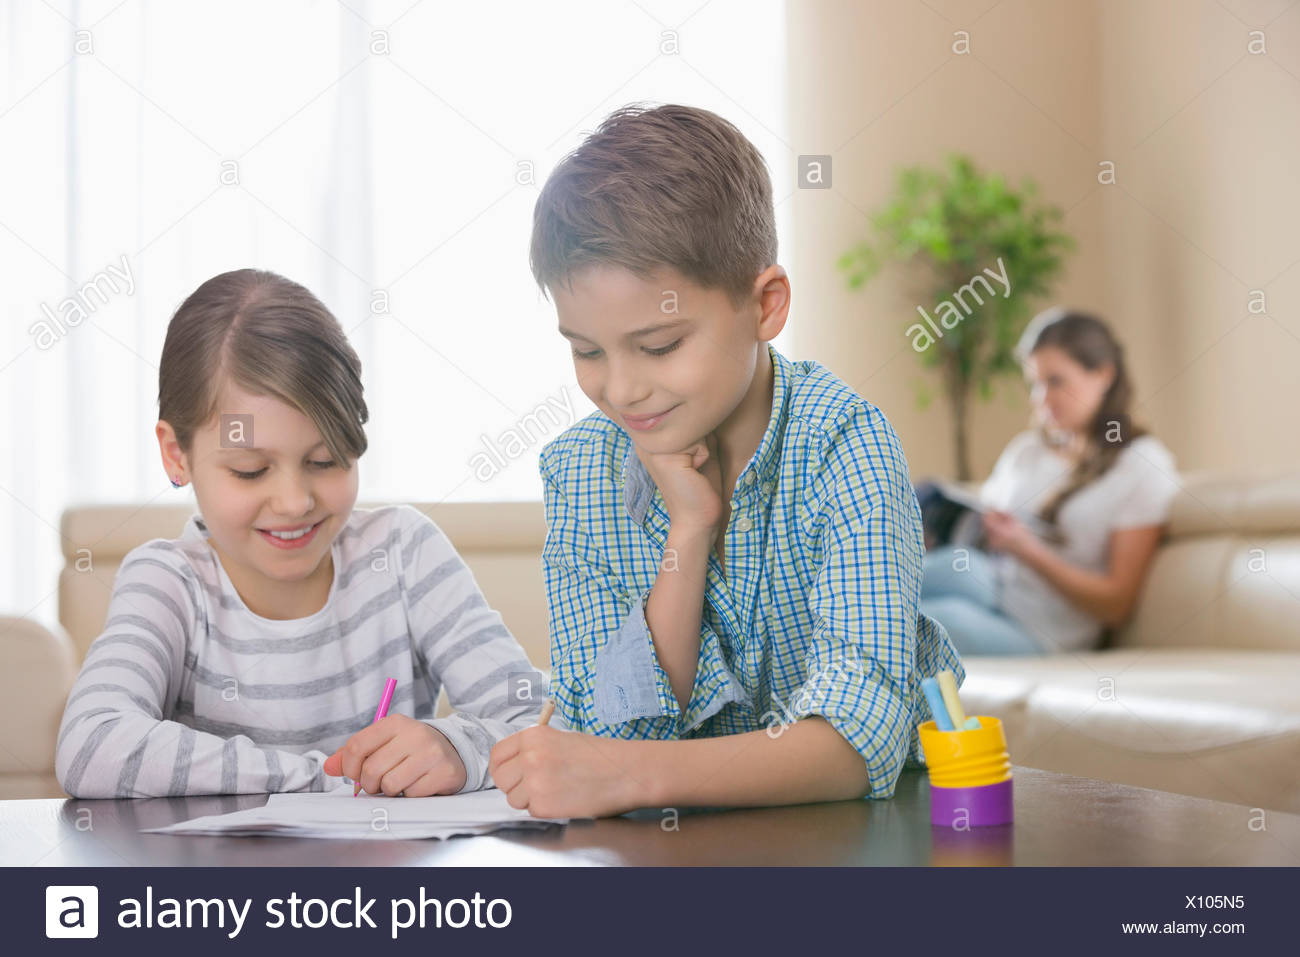 Siblings drawing together at table with mother in background - Stock Image